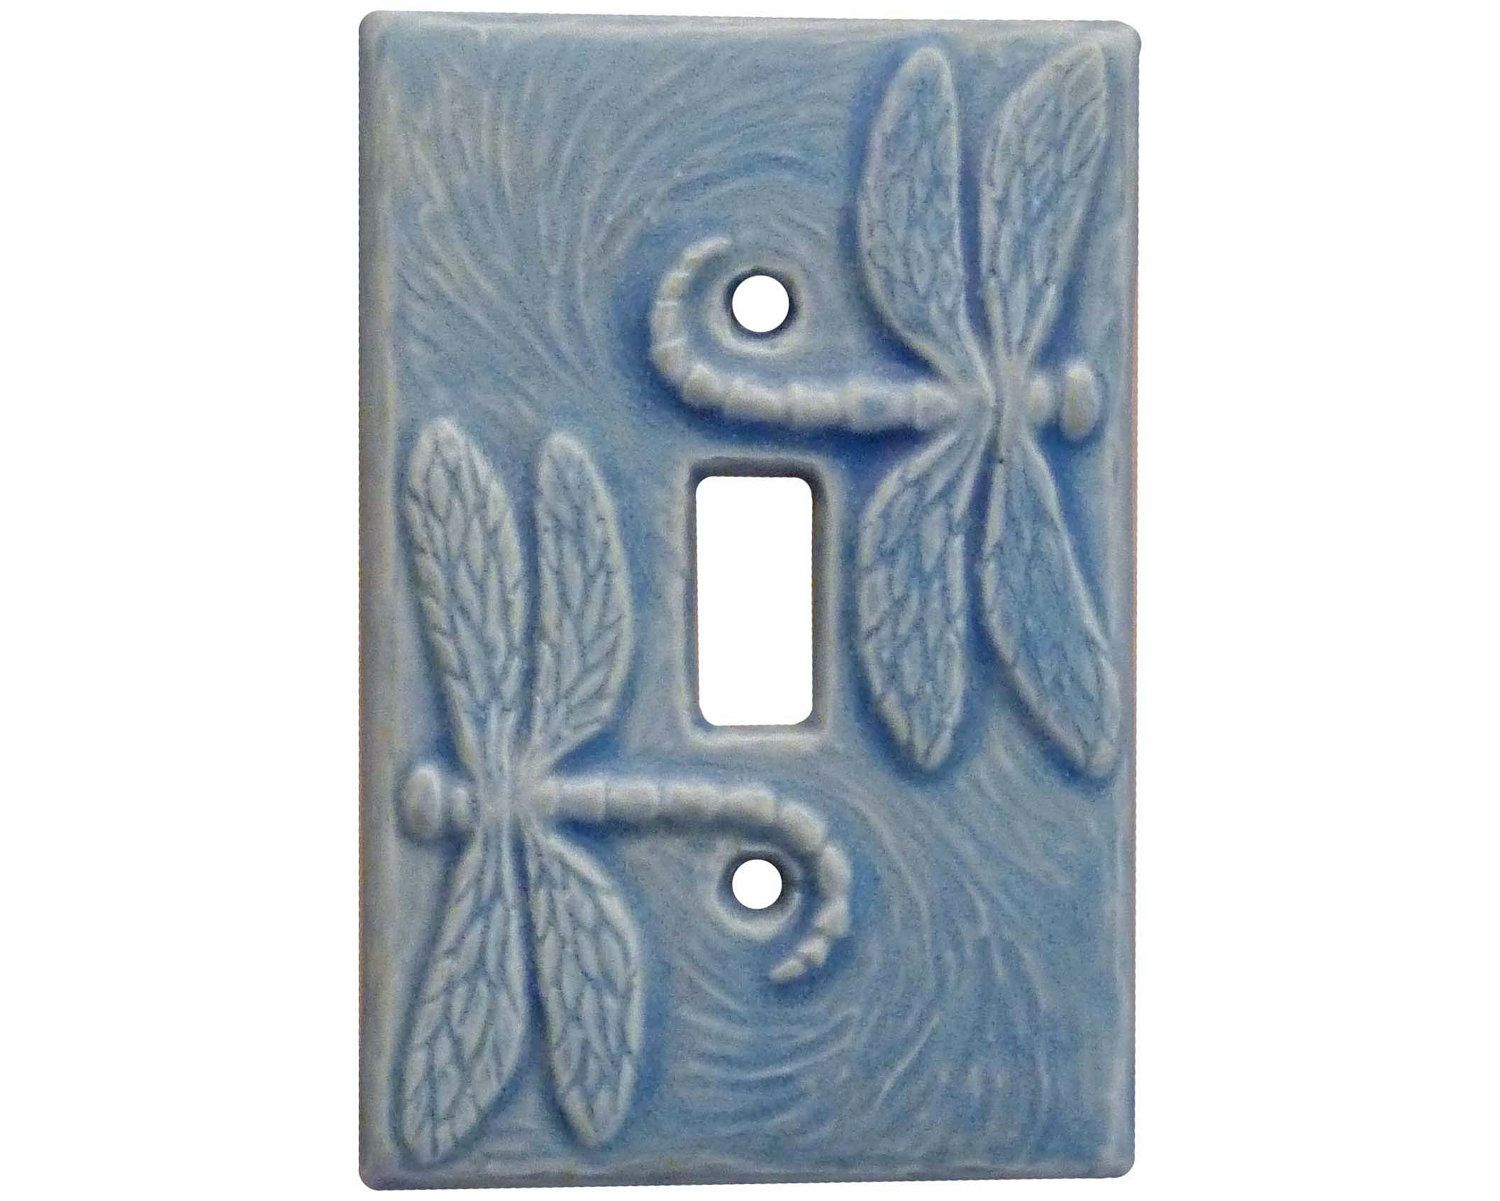 Ceramic Light Switch Covers Ceramic Light Switch Cover Dragonflies Single Toggle In Tan